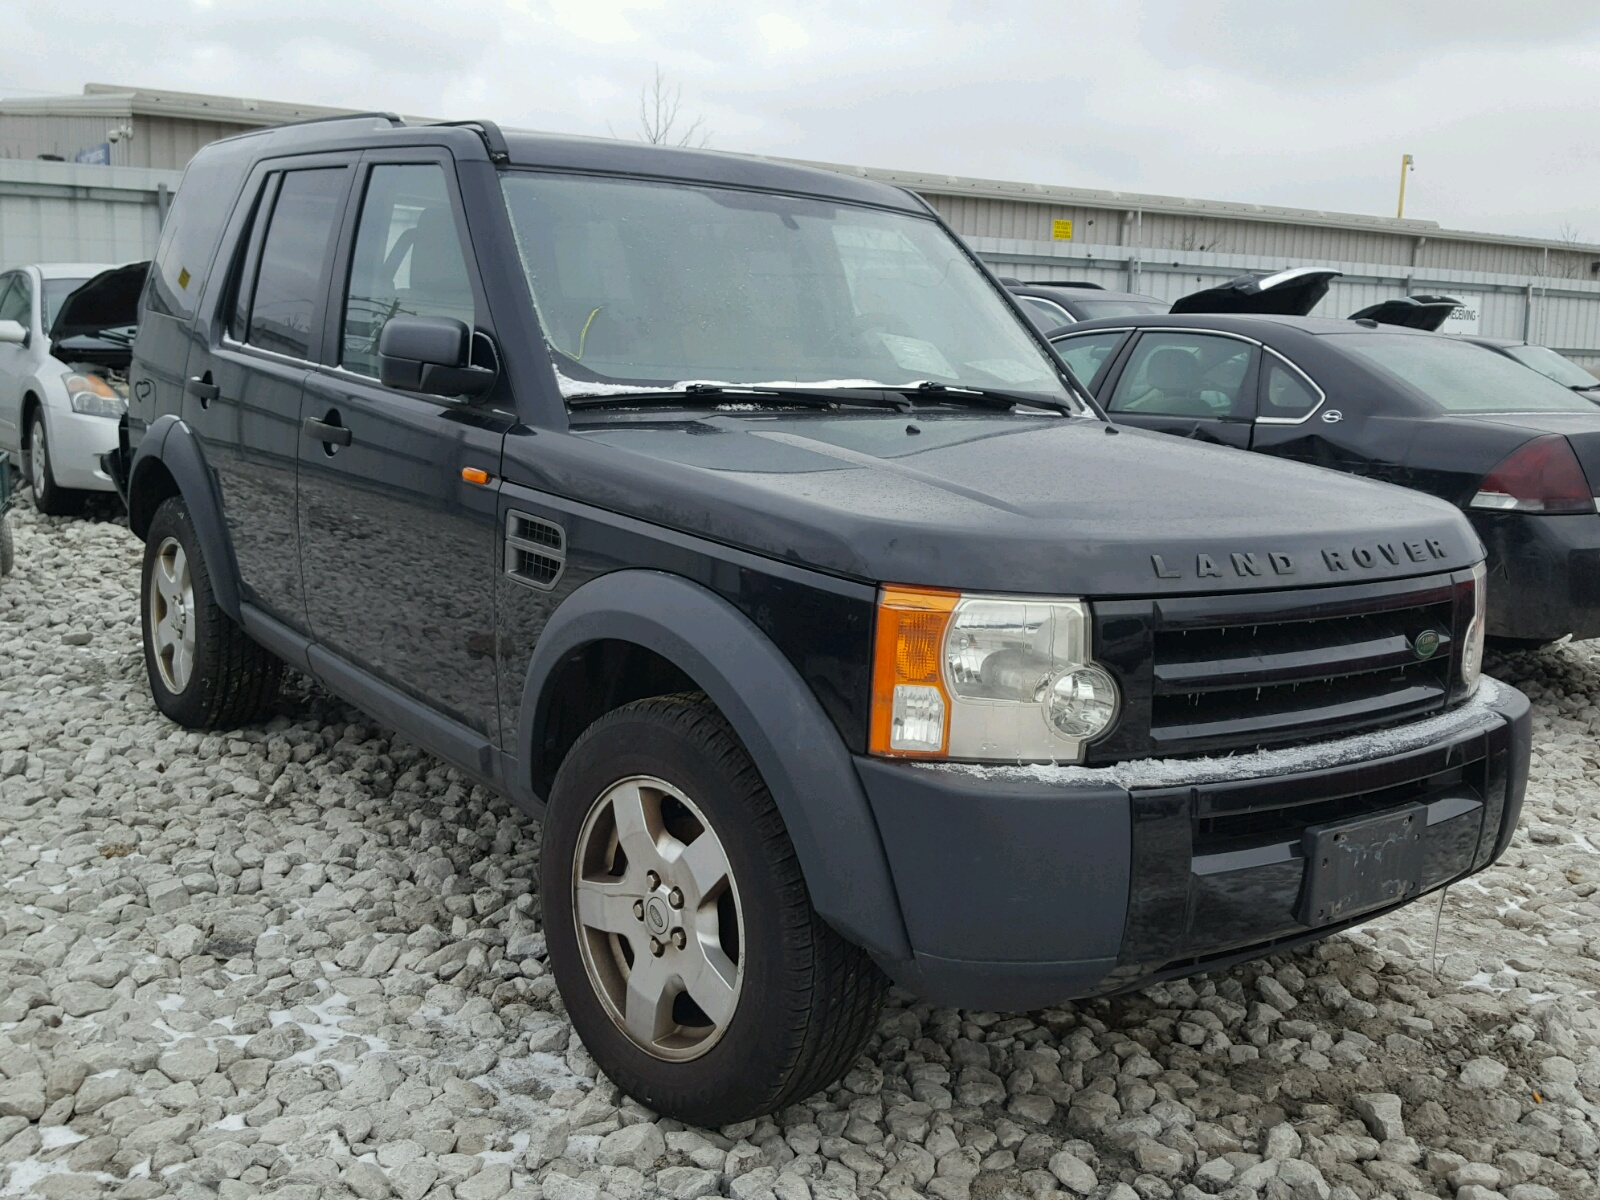 copart rover title auctions sale hse carfinder tx silver for auto engine salvage on vehicle in san landrover lot en antonio view online land